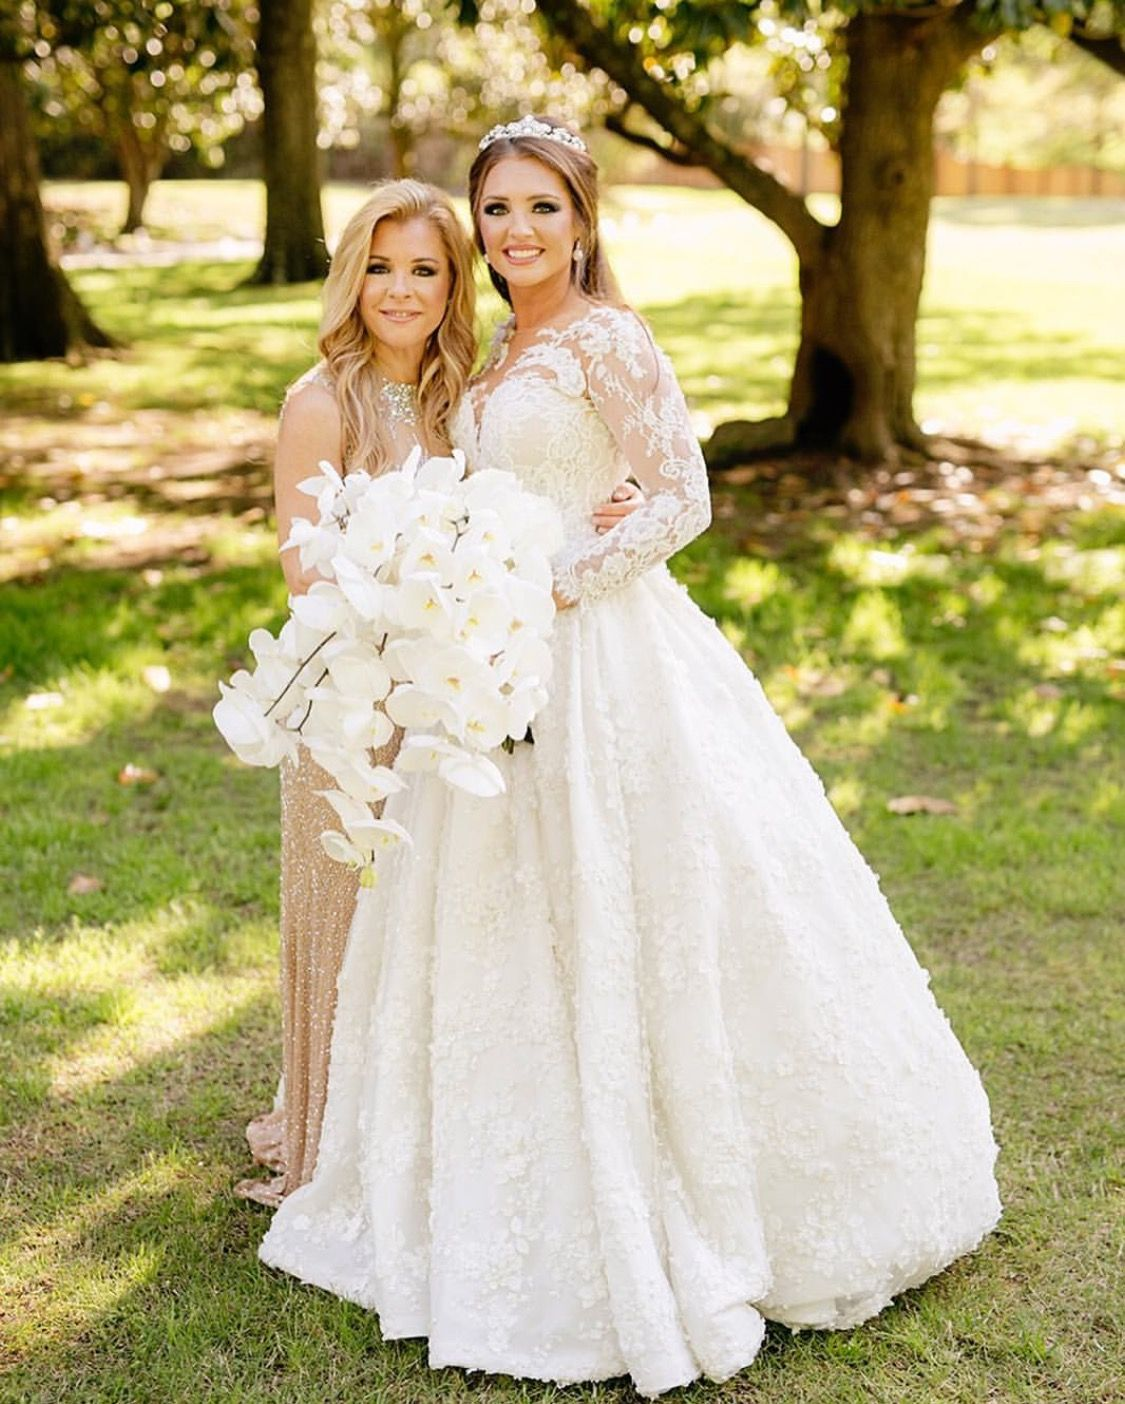 After The Wedding Dress Ideas: Collin Tuohy Wedding With Her Mom LeAnn Tuohy